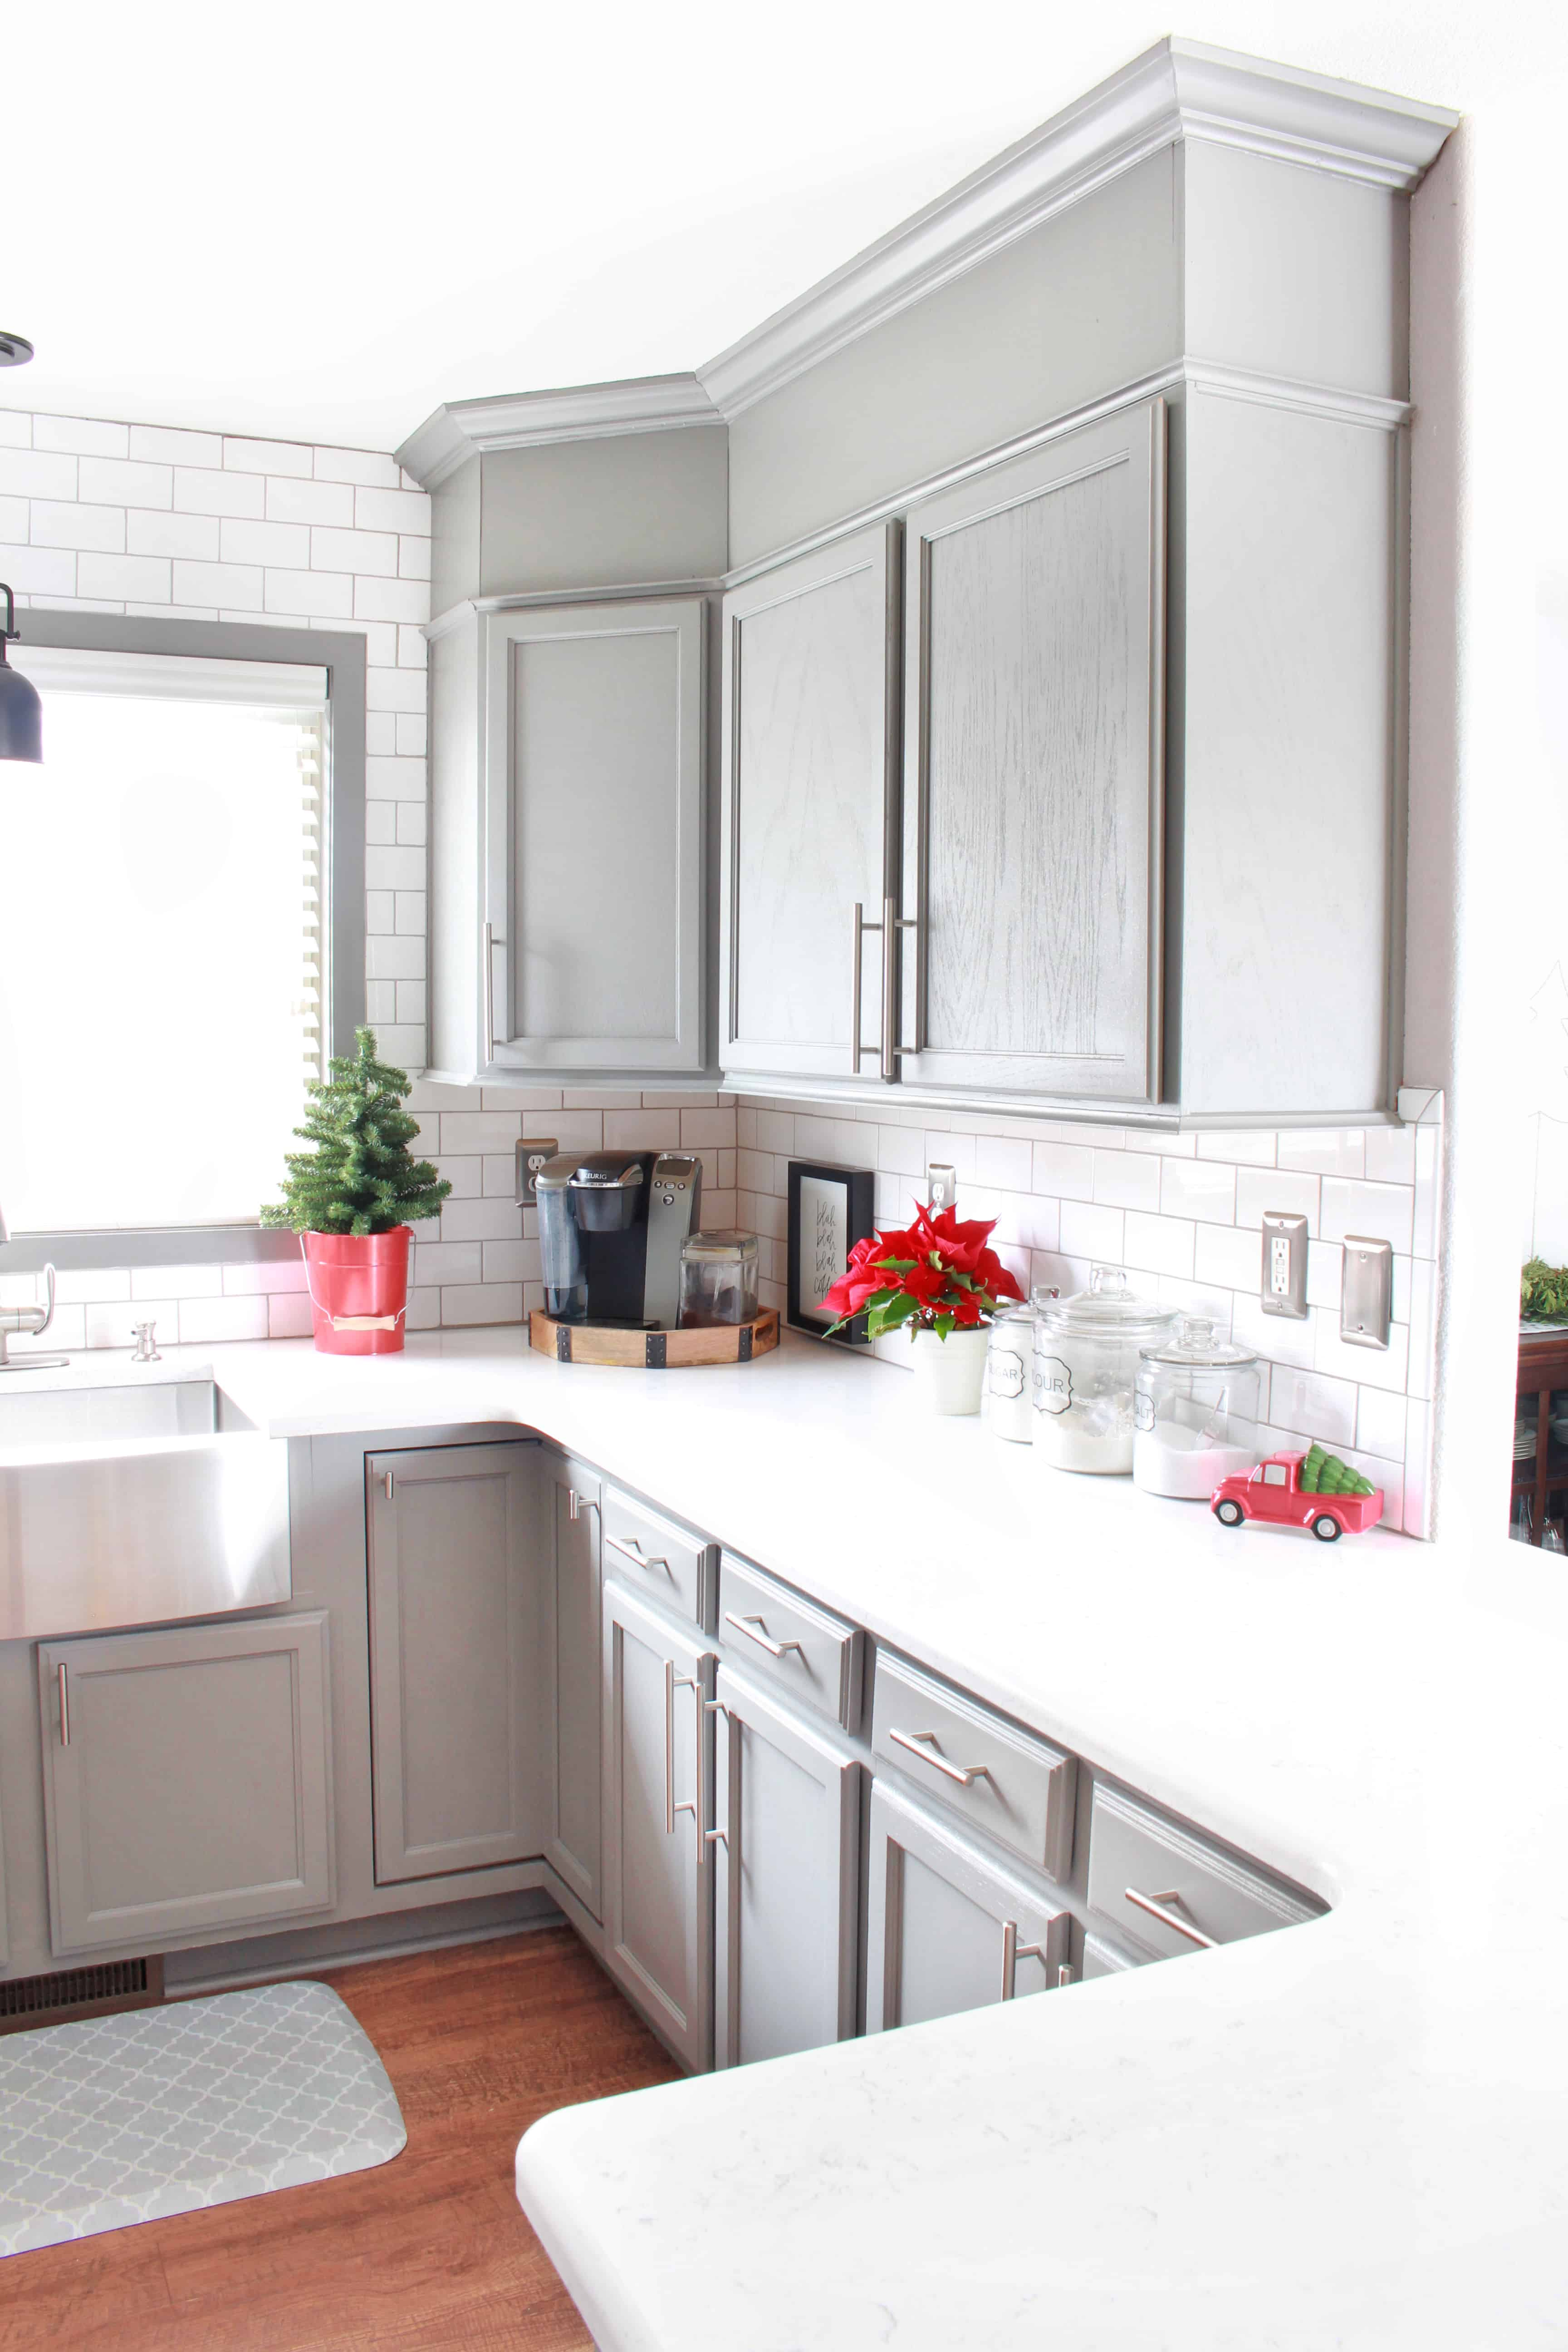 christmas-home-tour-kitchen-with-red-truck-inspirationformoms